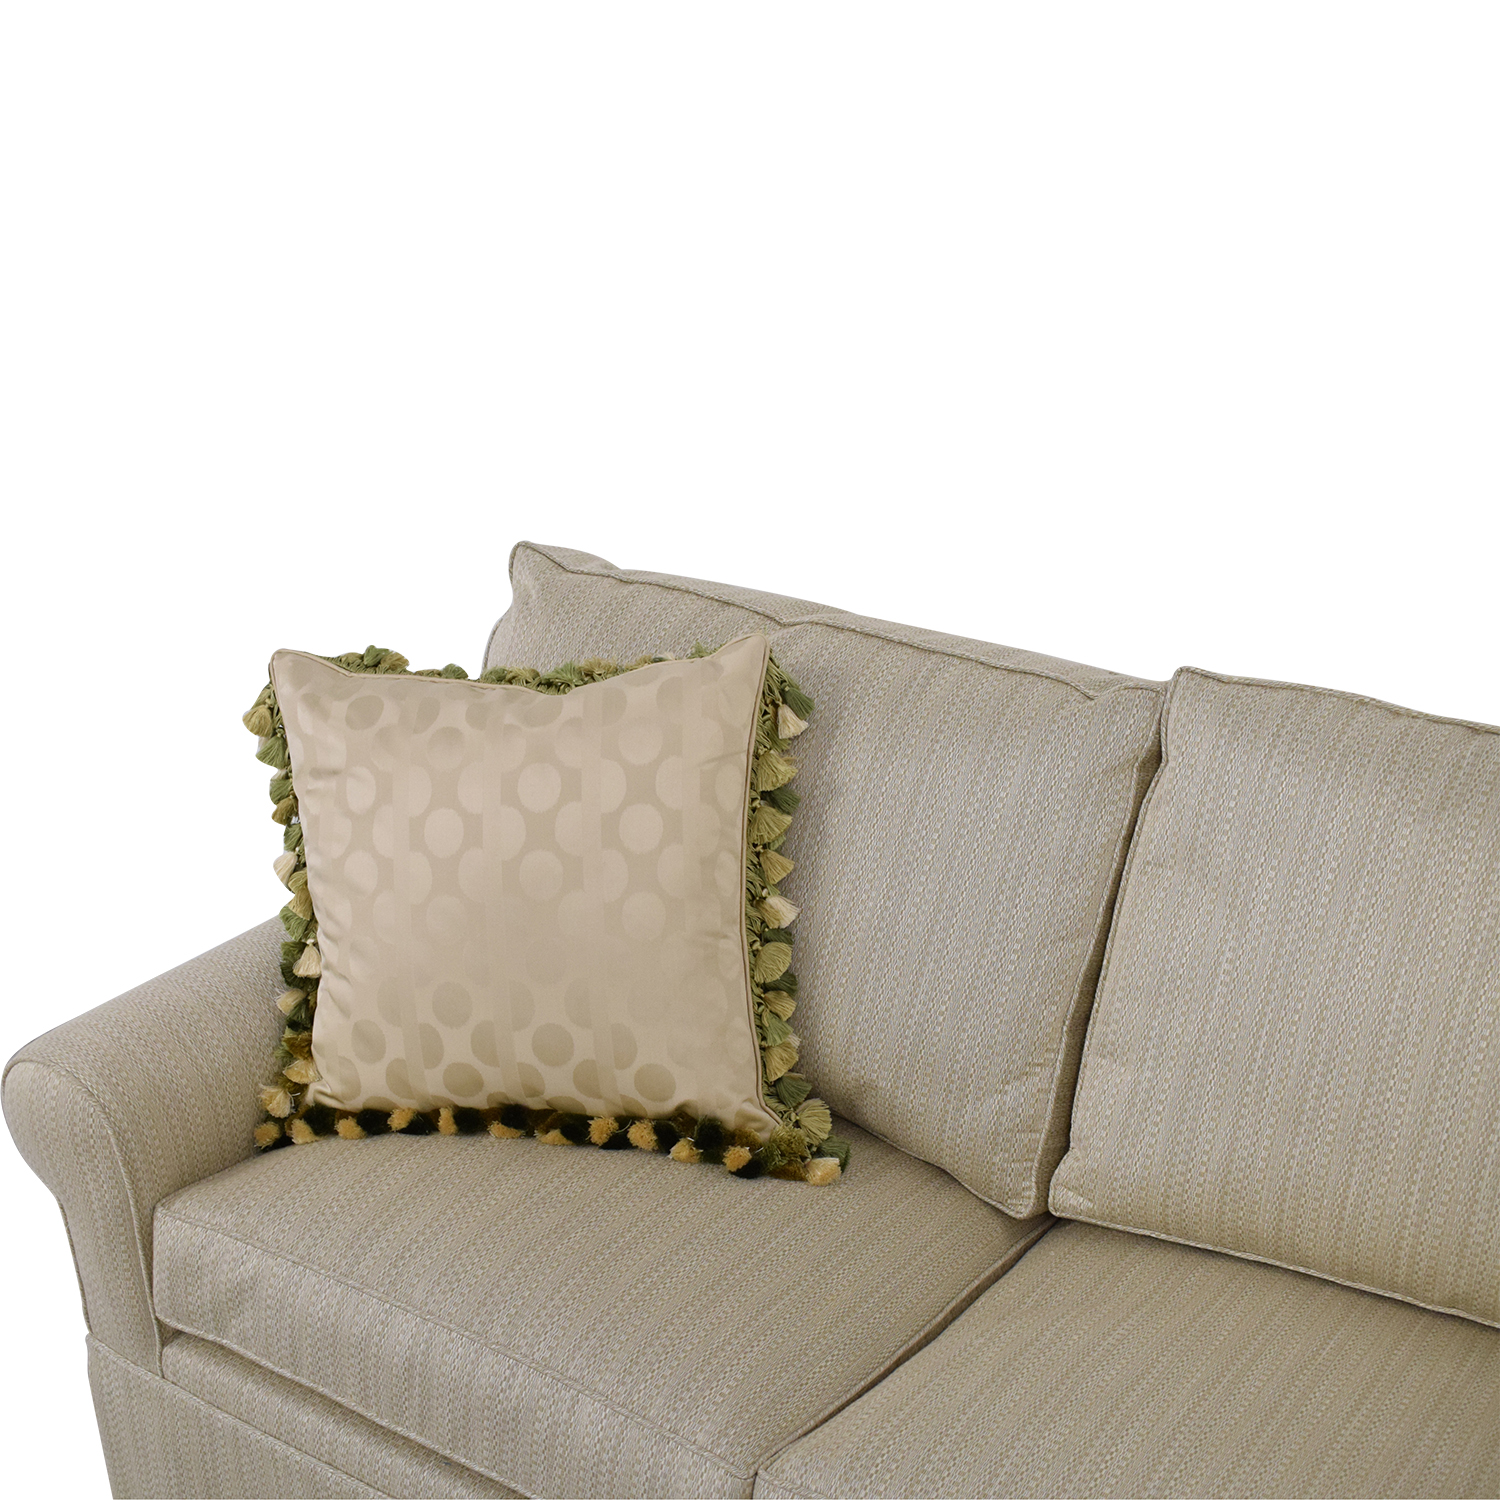 Carlyle Carlyle Queen Plus Sleeper Sofa for sale